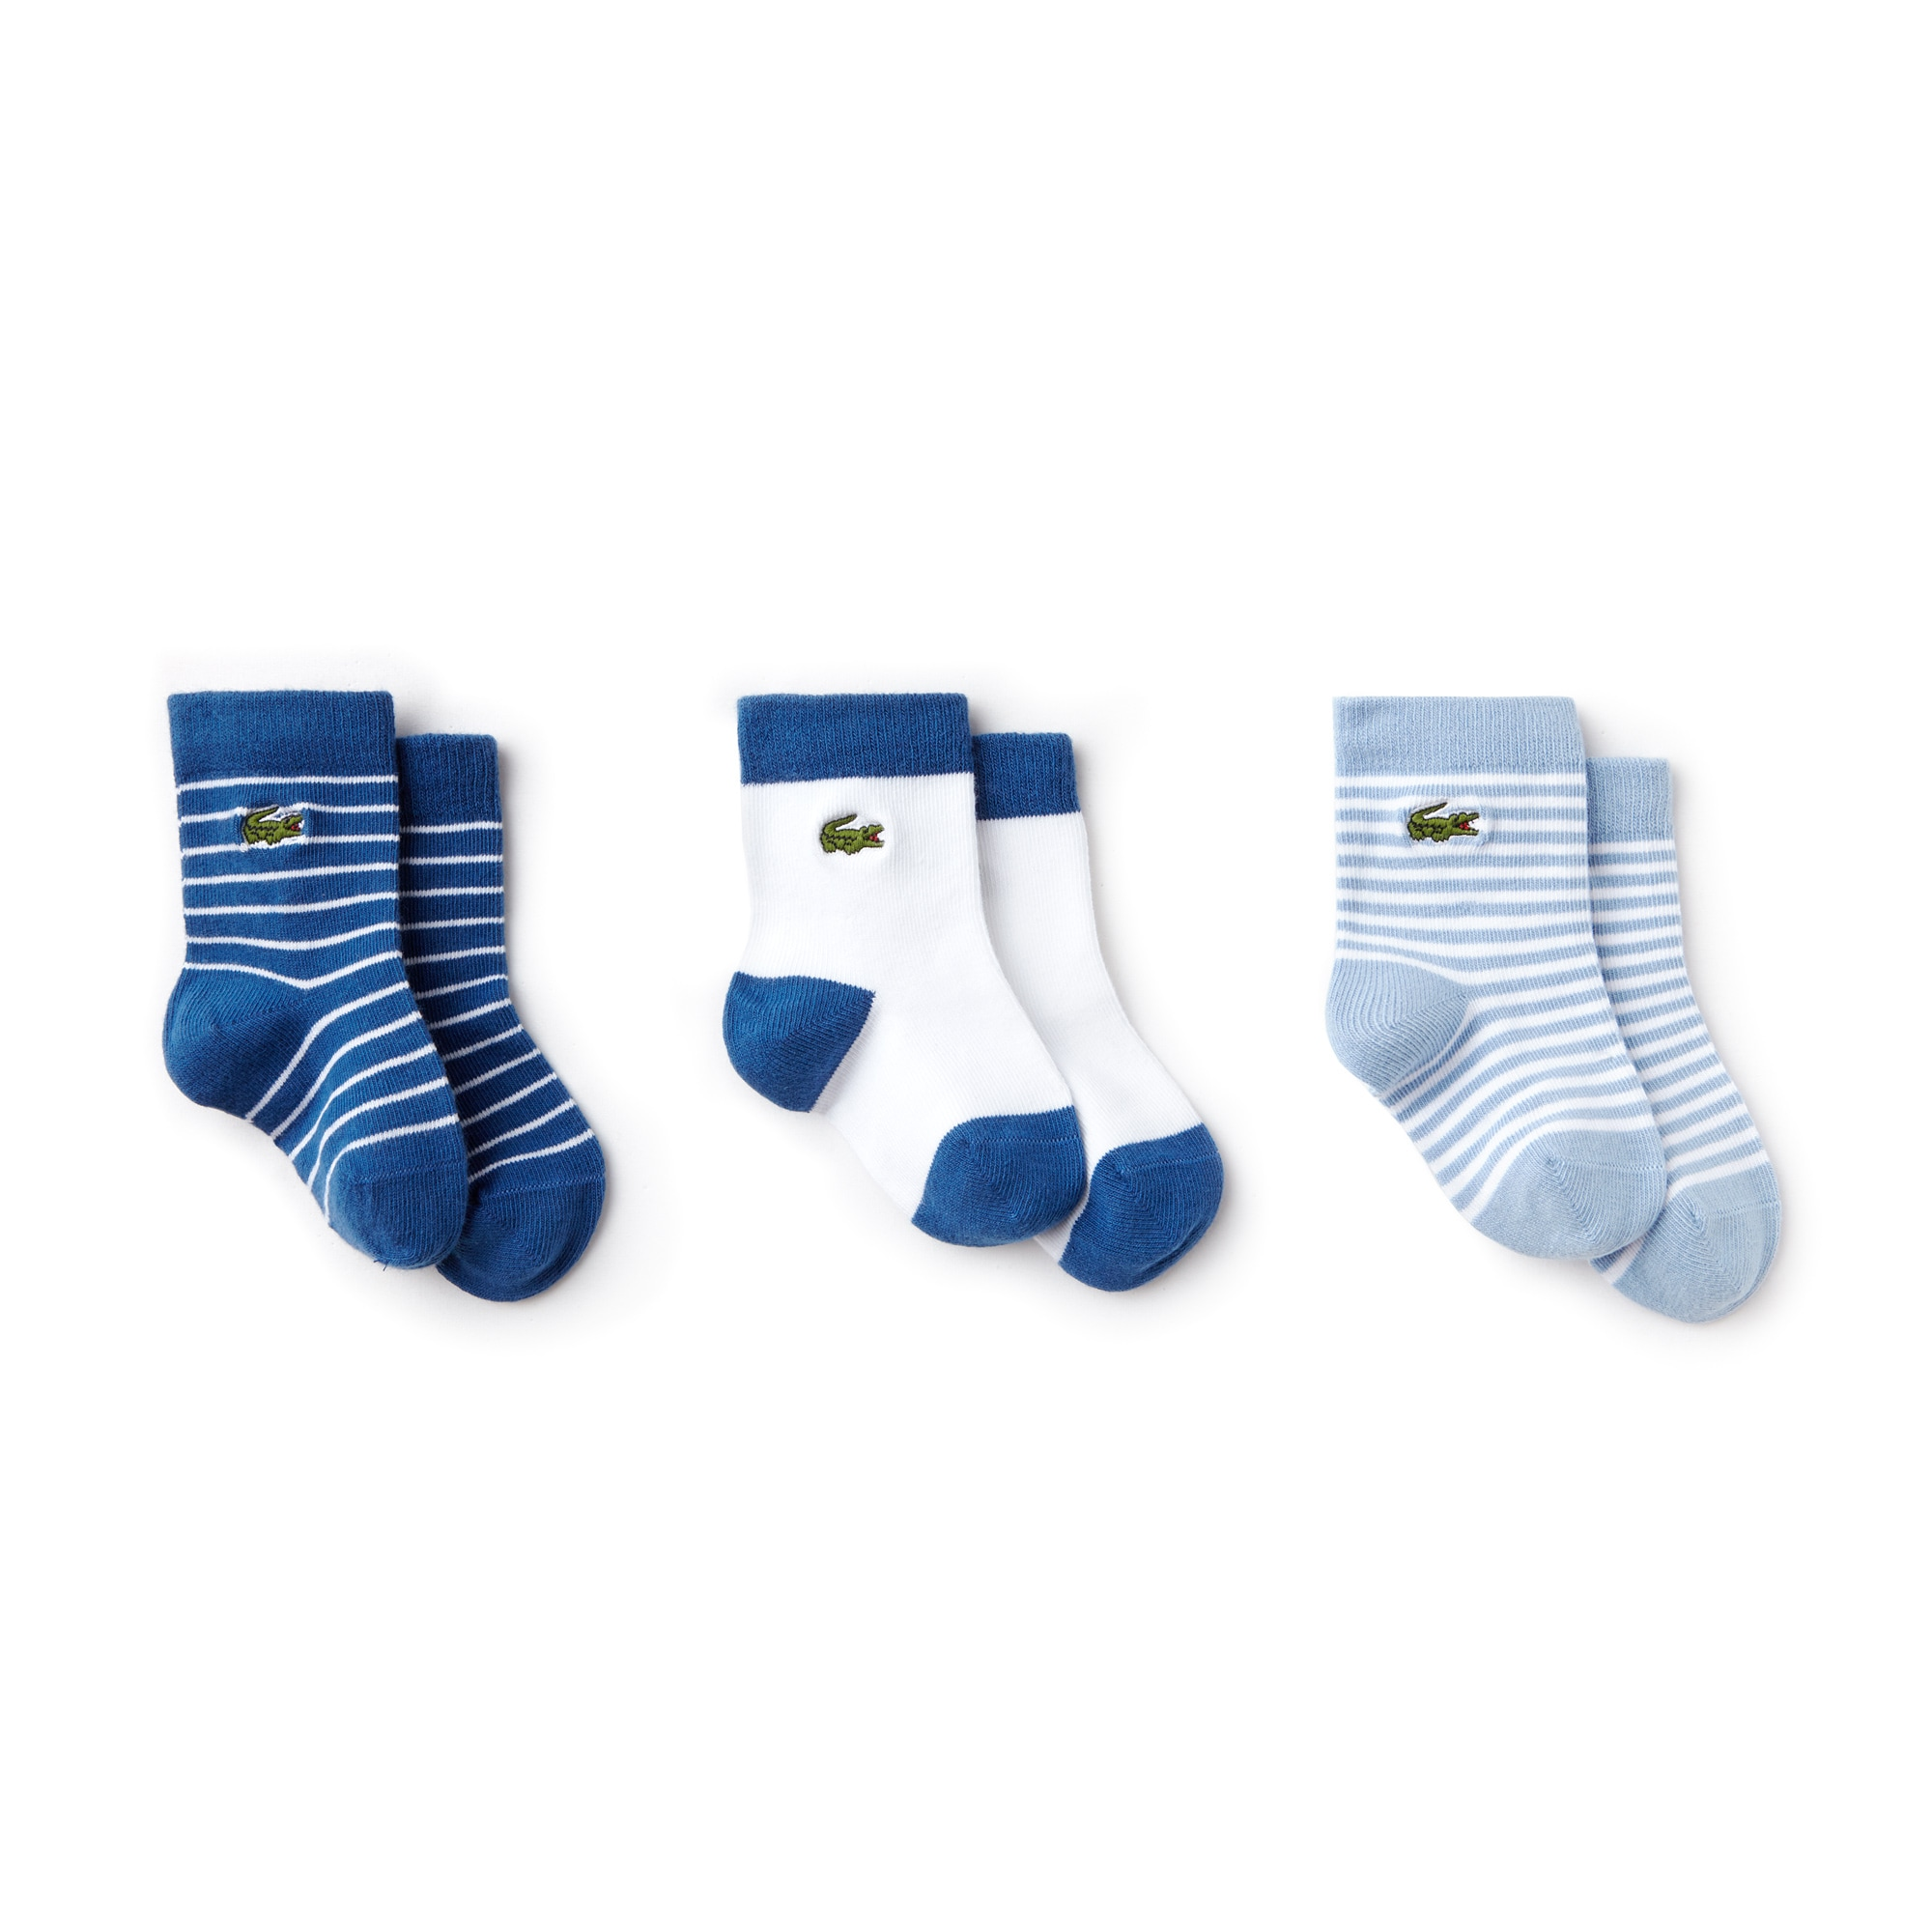 Unisex Jersey Sock Three-Pack